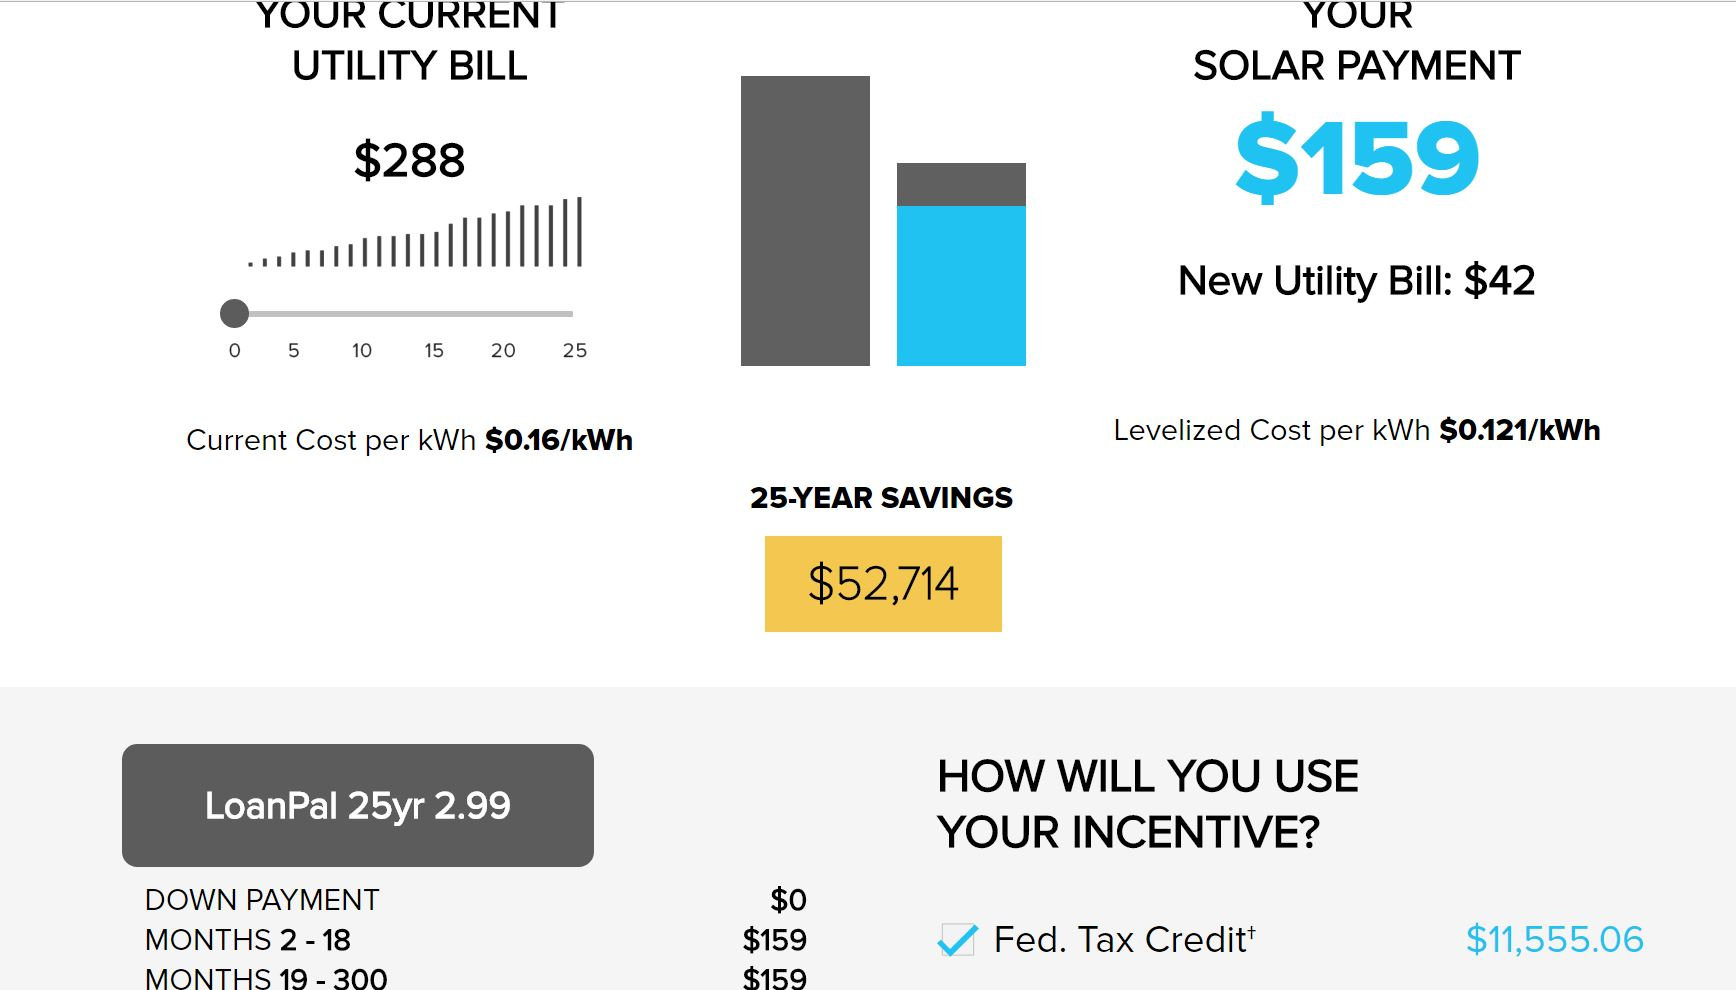 Solar Proposal - New Solar Payments